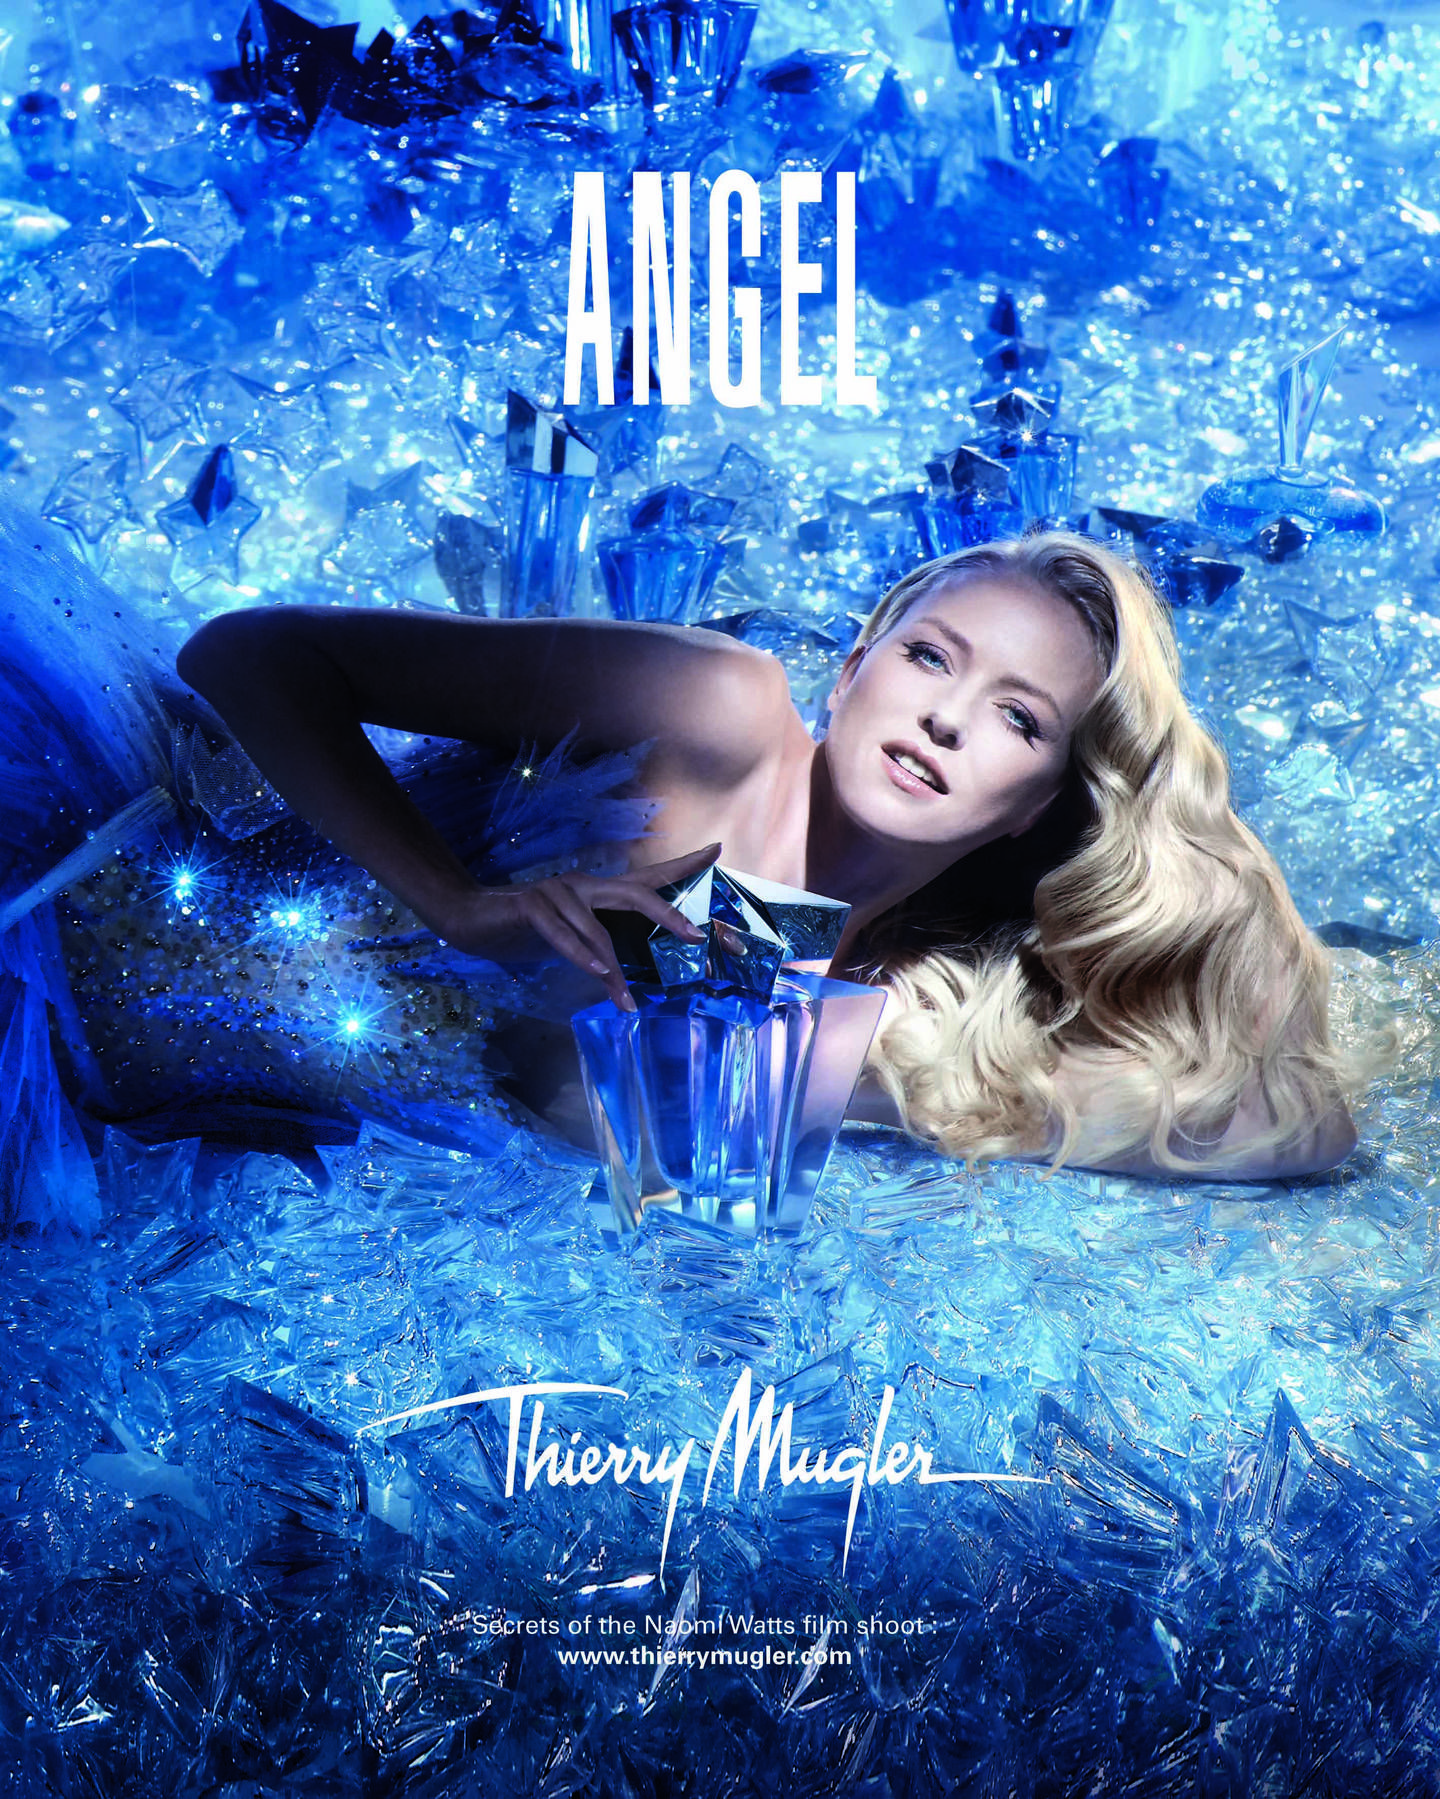 The Secrets Behind Thierry Mugler S Iconic Angel Ad Campaigns